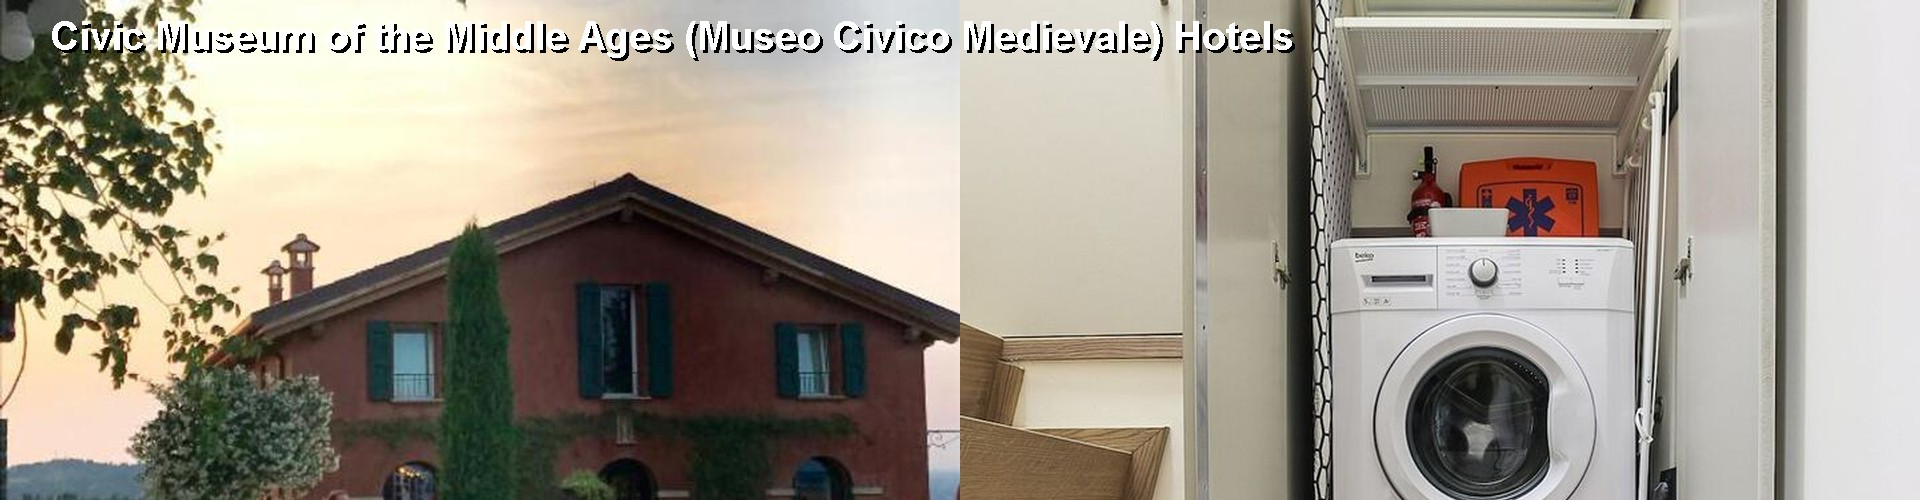 5 Best Hotels near Civic Museum of the Middle Ages (Museo Civico Medievale)